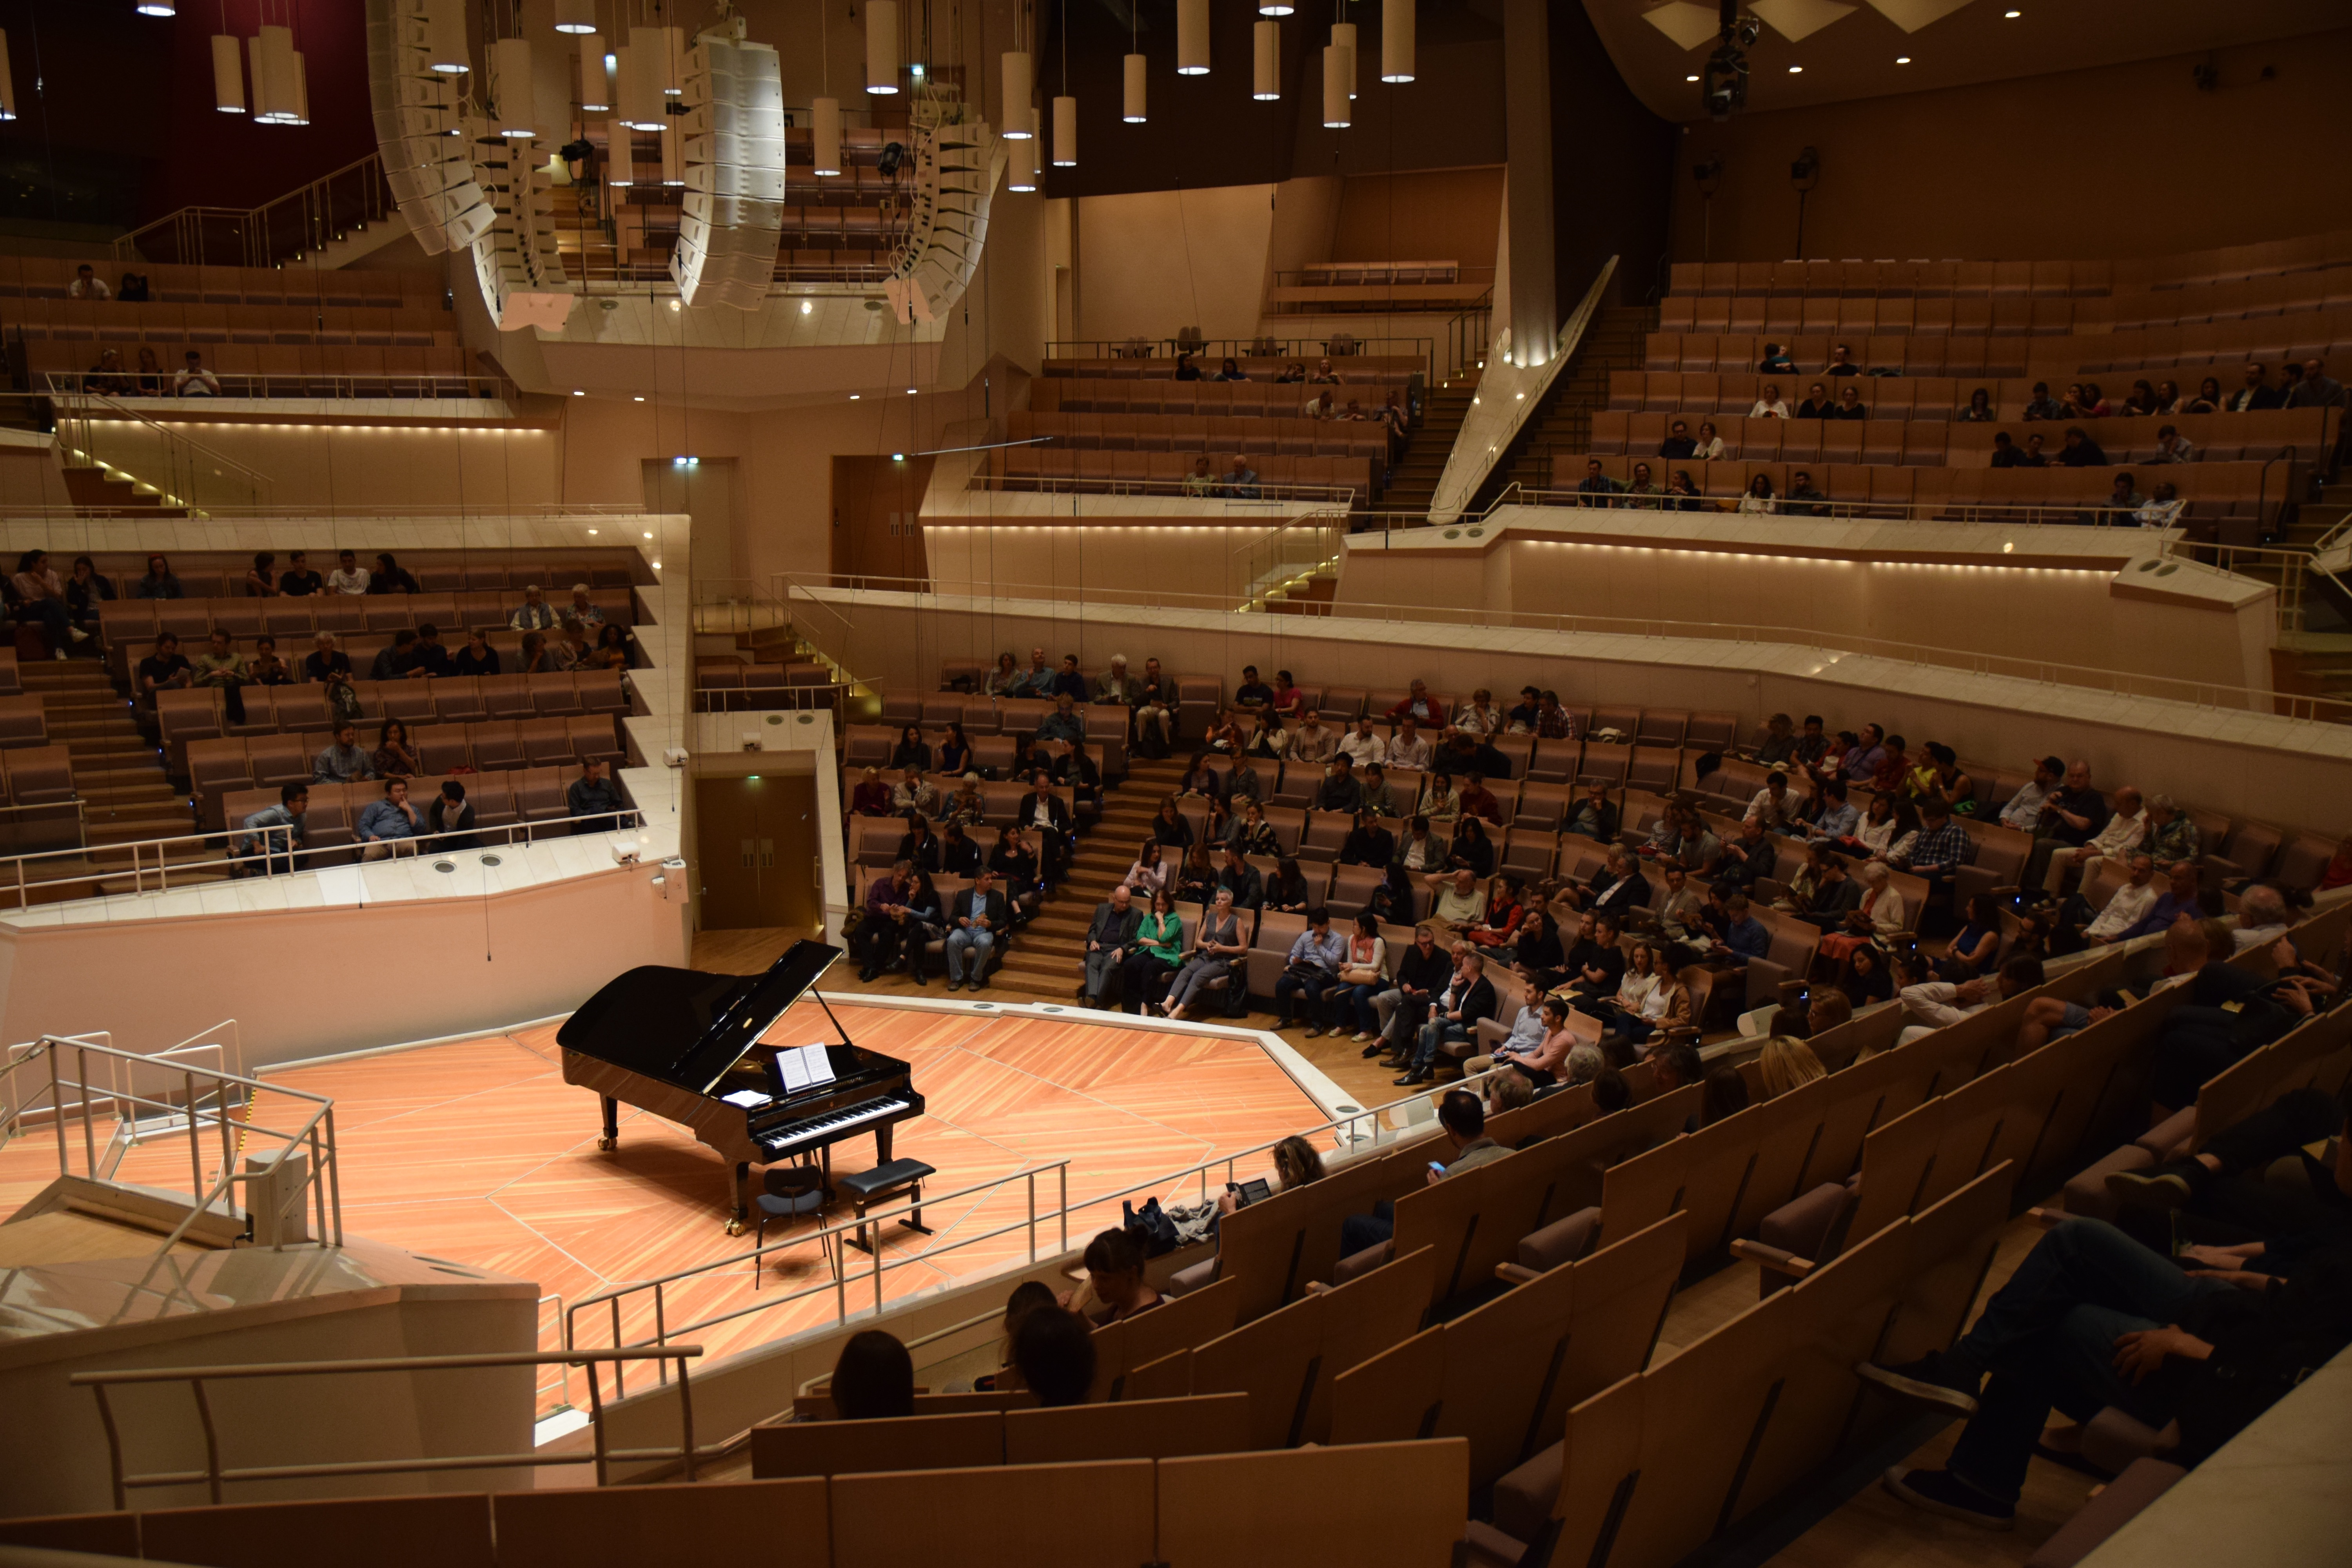 berliner music competition 21